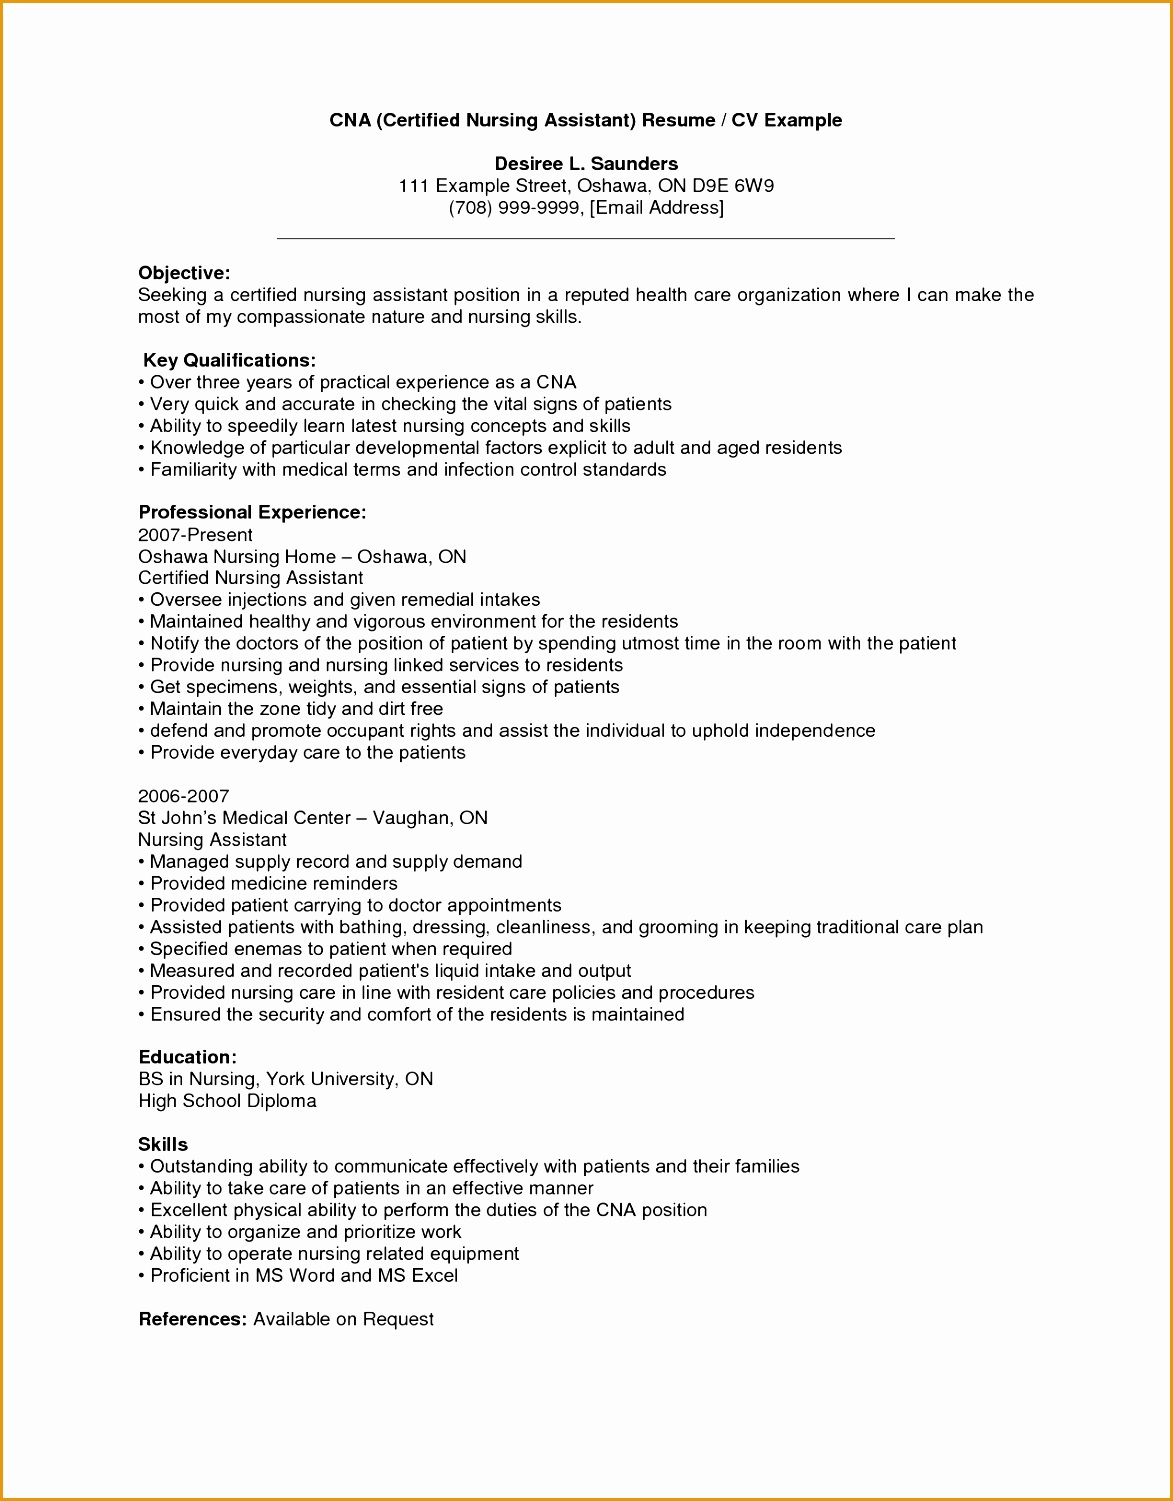 nursing assistant objective for resume examples cna cover letter example with key qualifications and professional experience